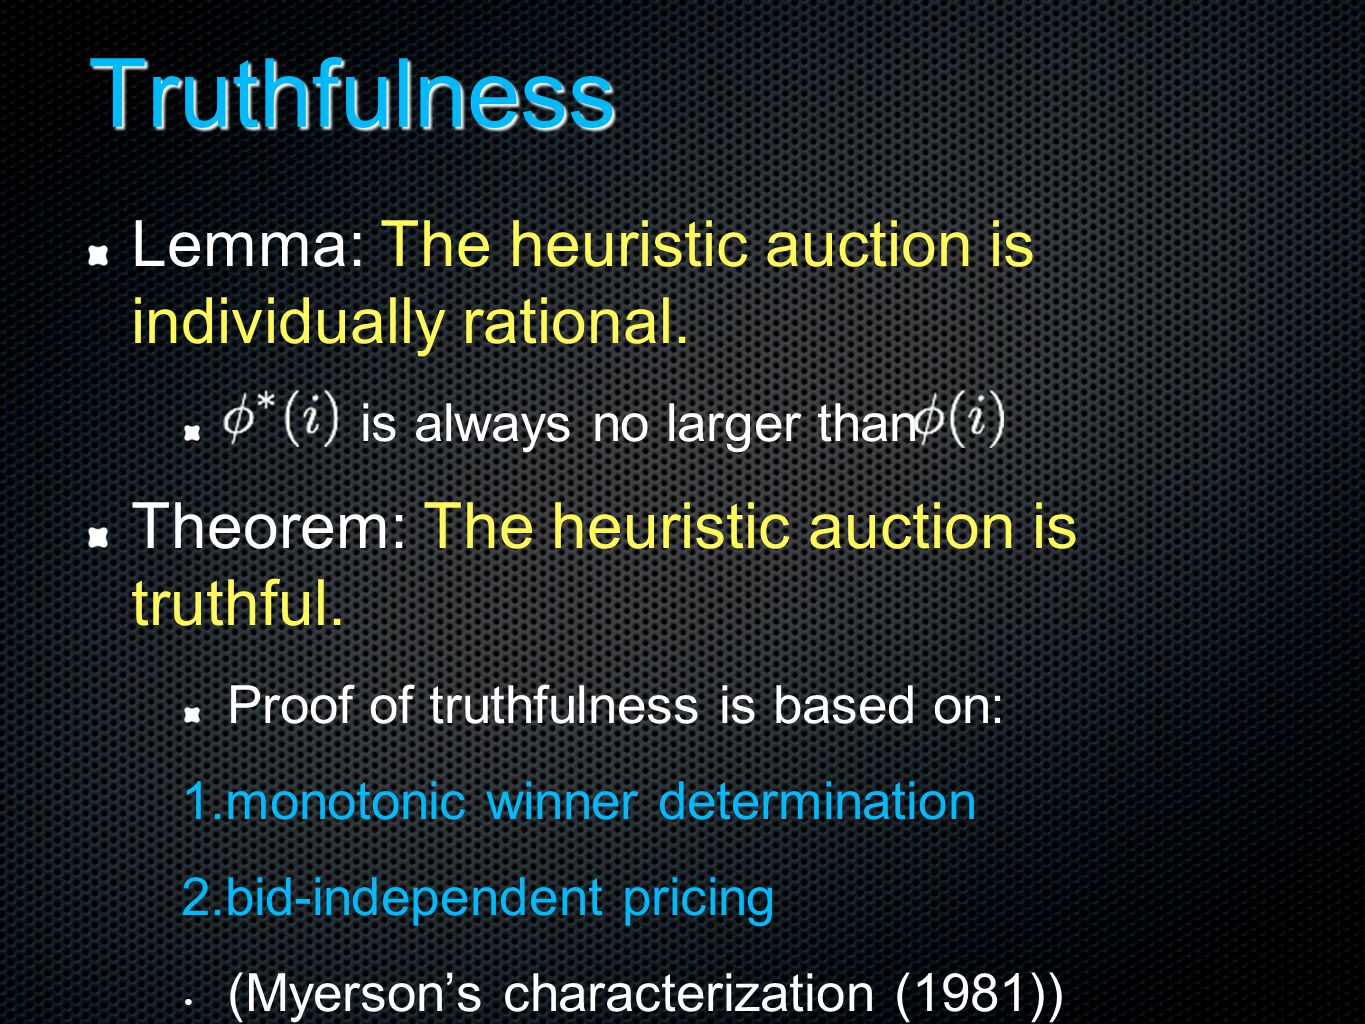 Truthfulness Lemma: The heuristic auction is individually rational.